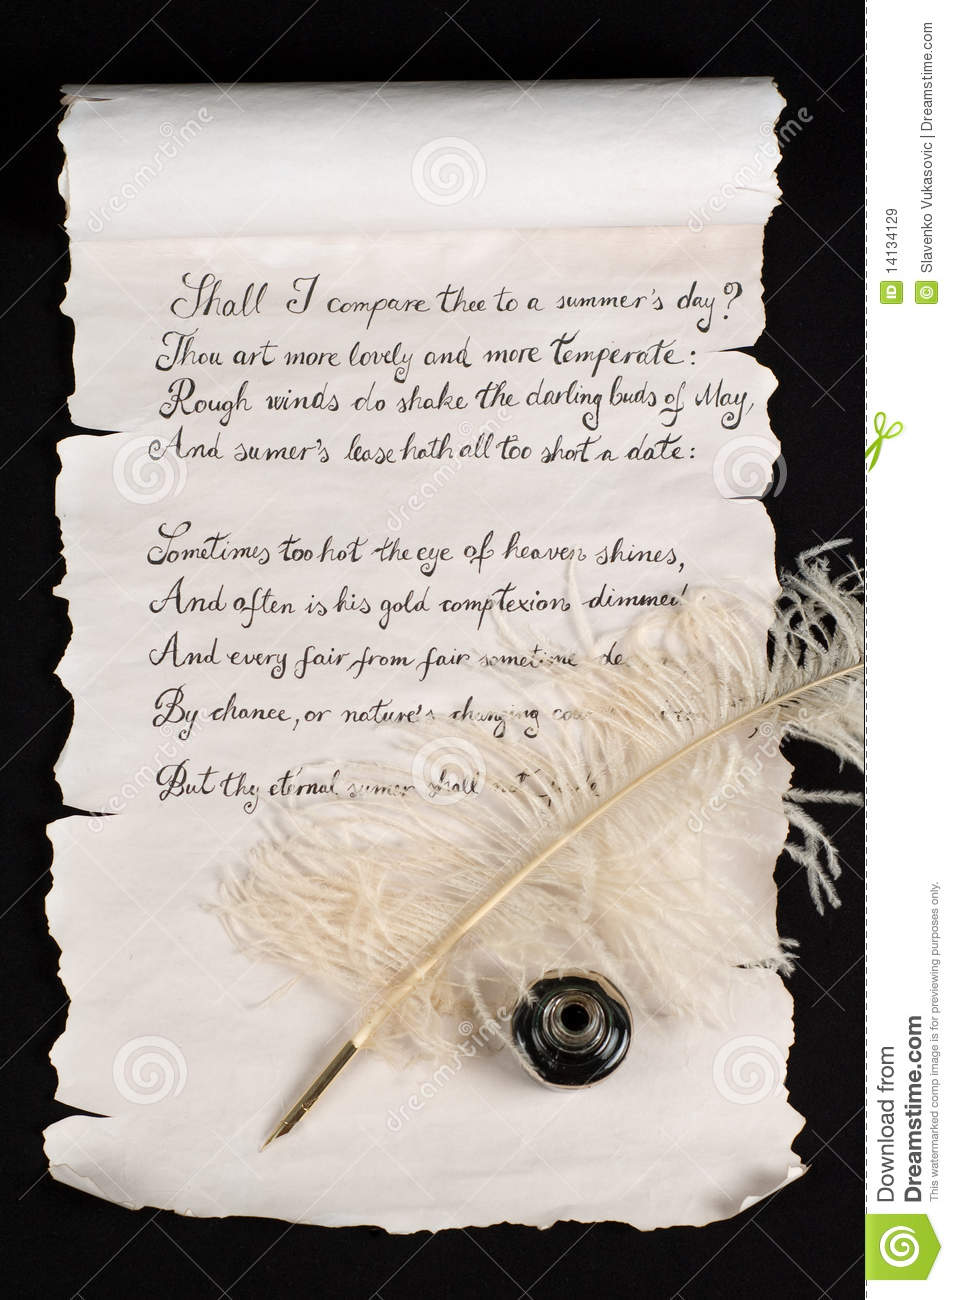 shakespeare s sonnet stock image image of elegance  shakespeare s sonnet 18